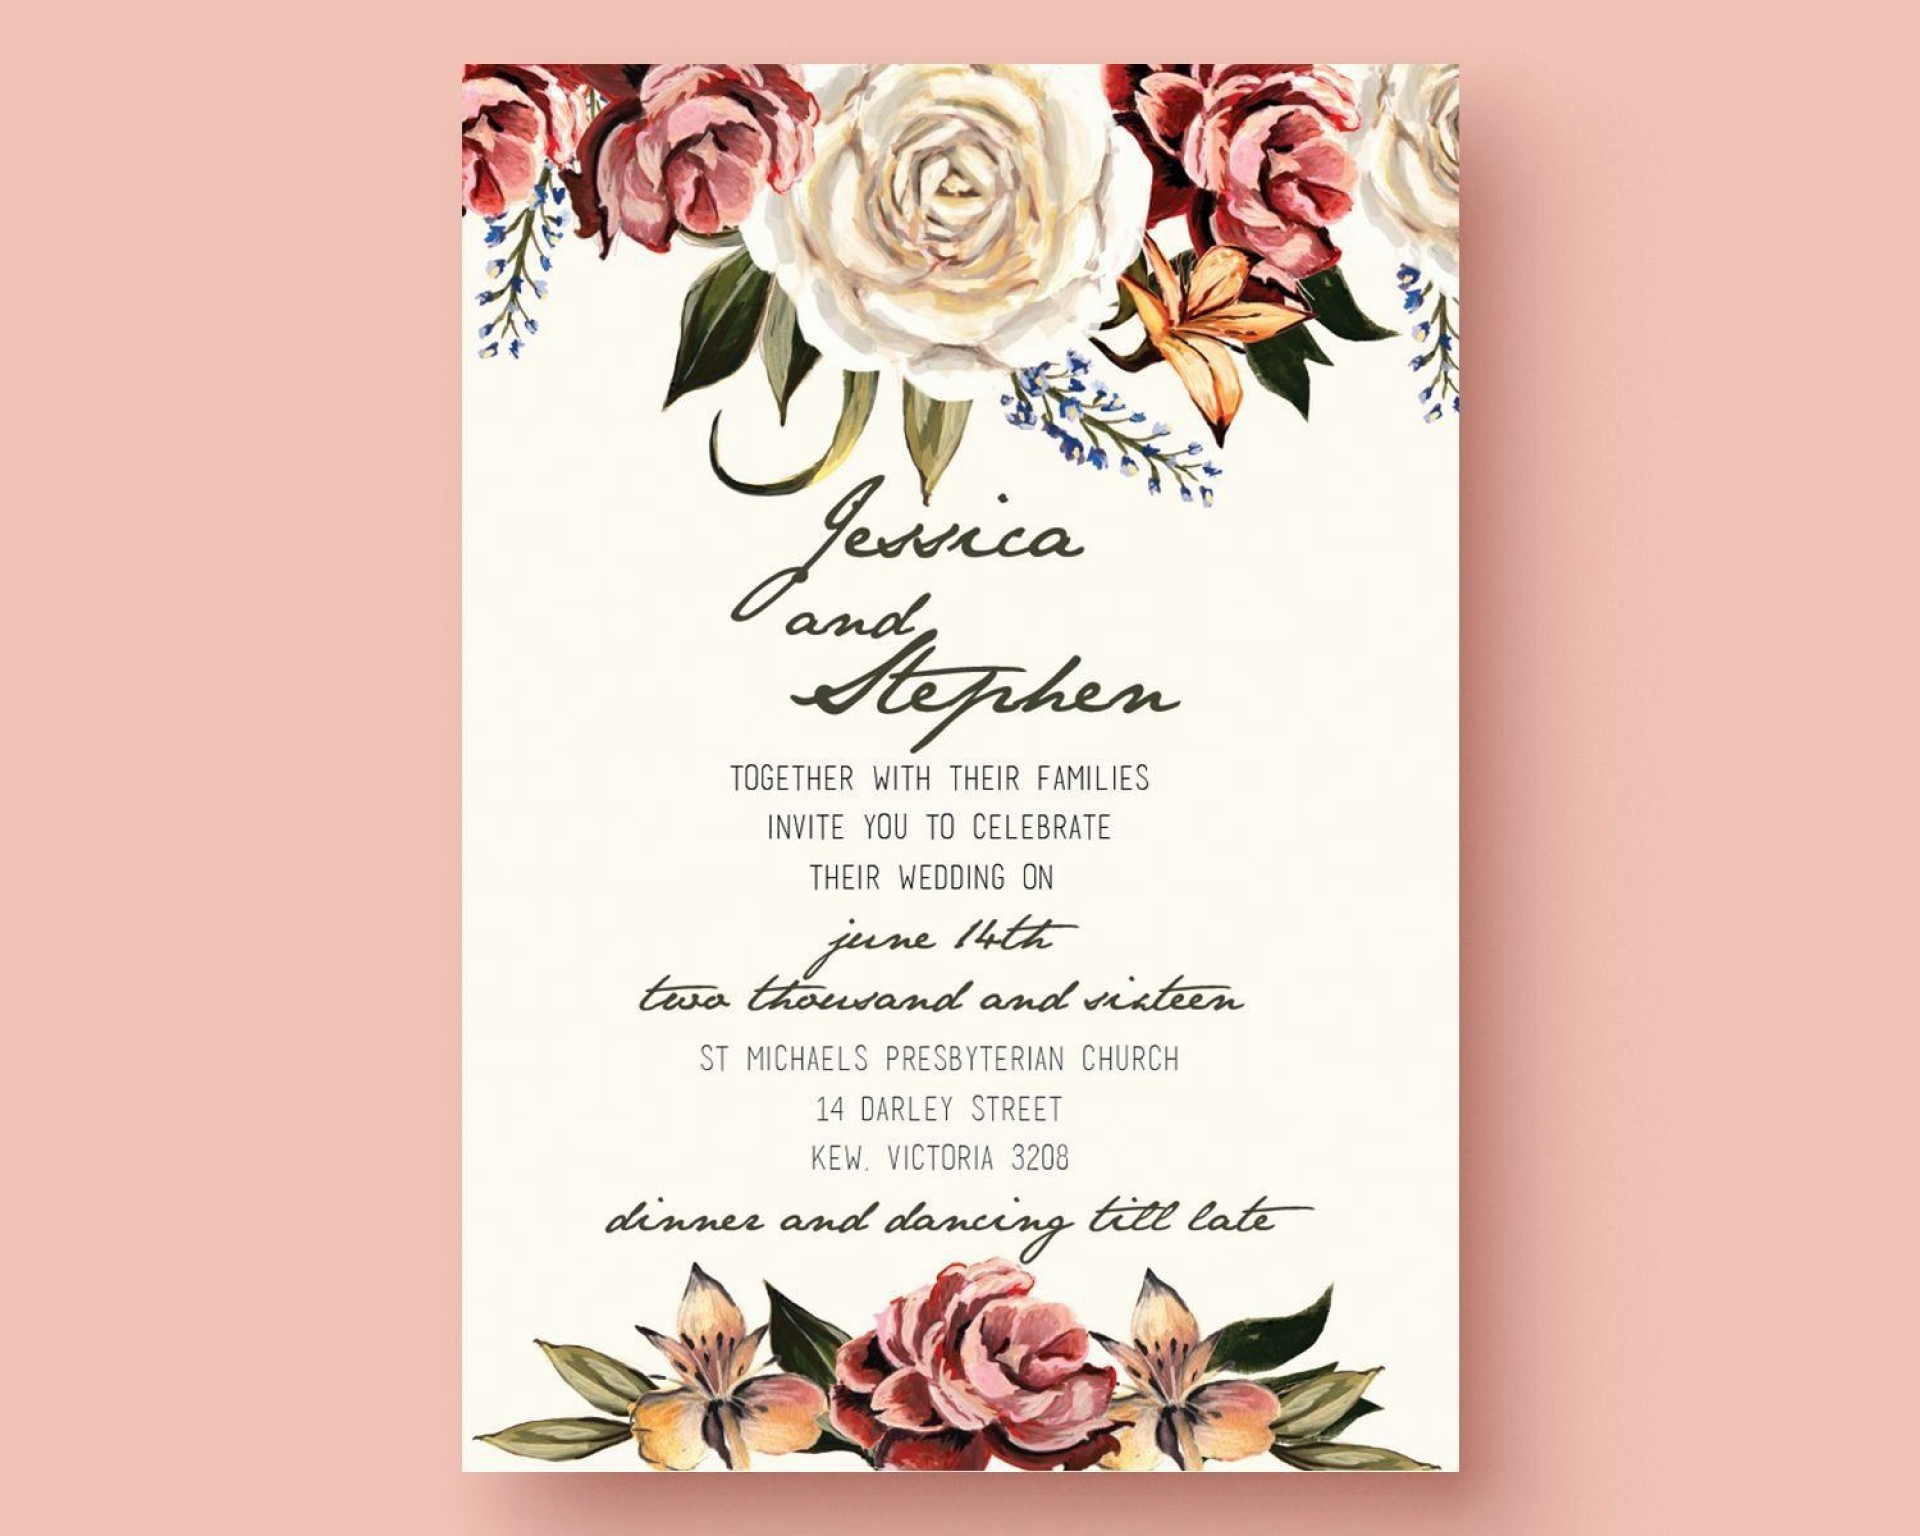 001 Wondrou Free Download Invitation Card Format Concept  Marriage In Word Psd Wedding1920